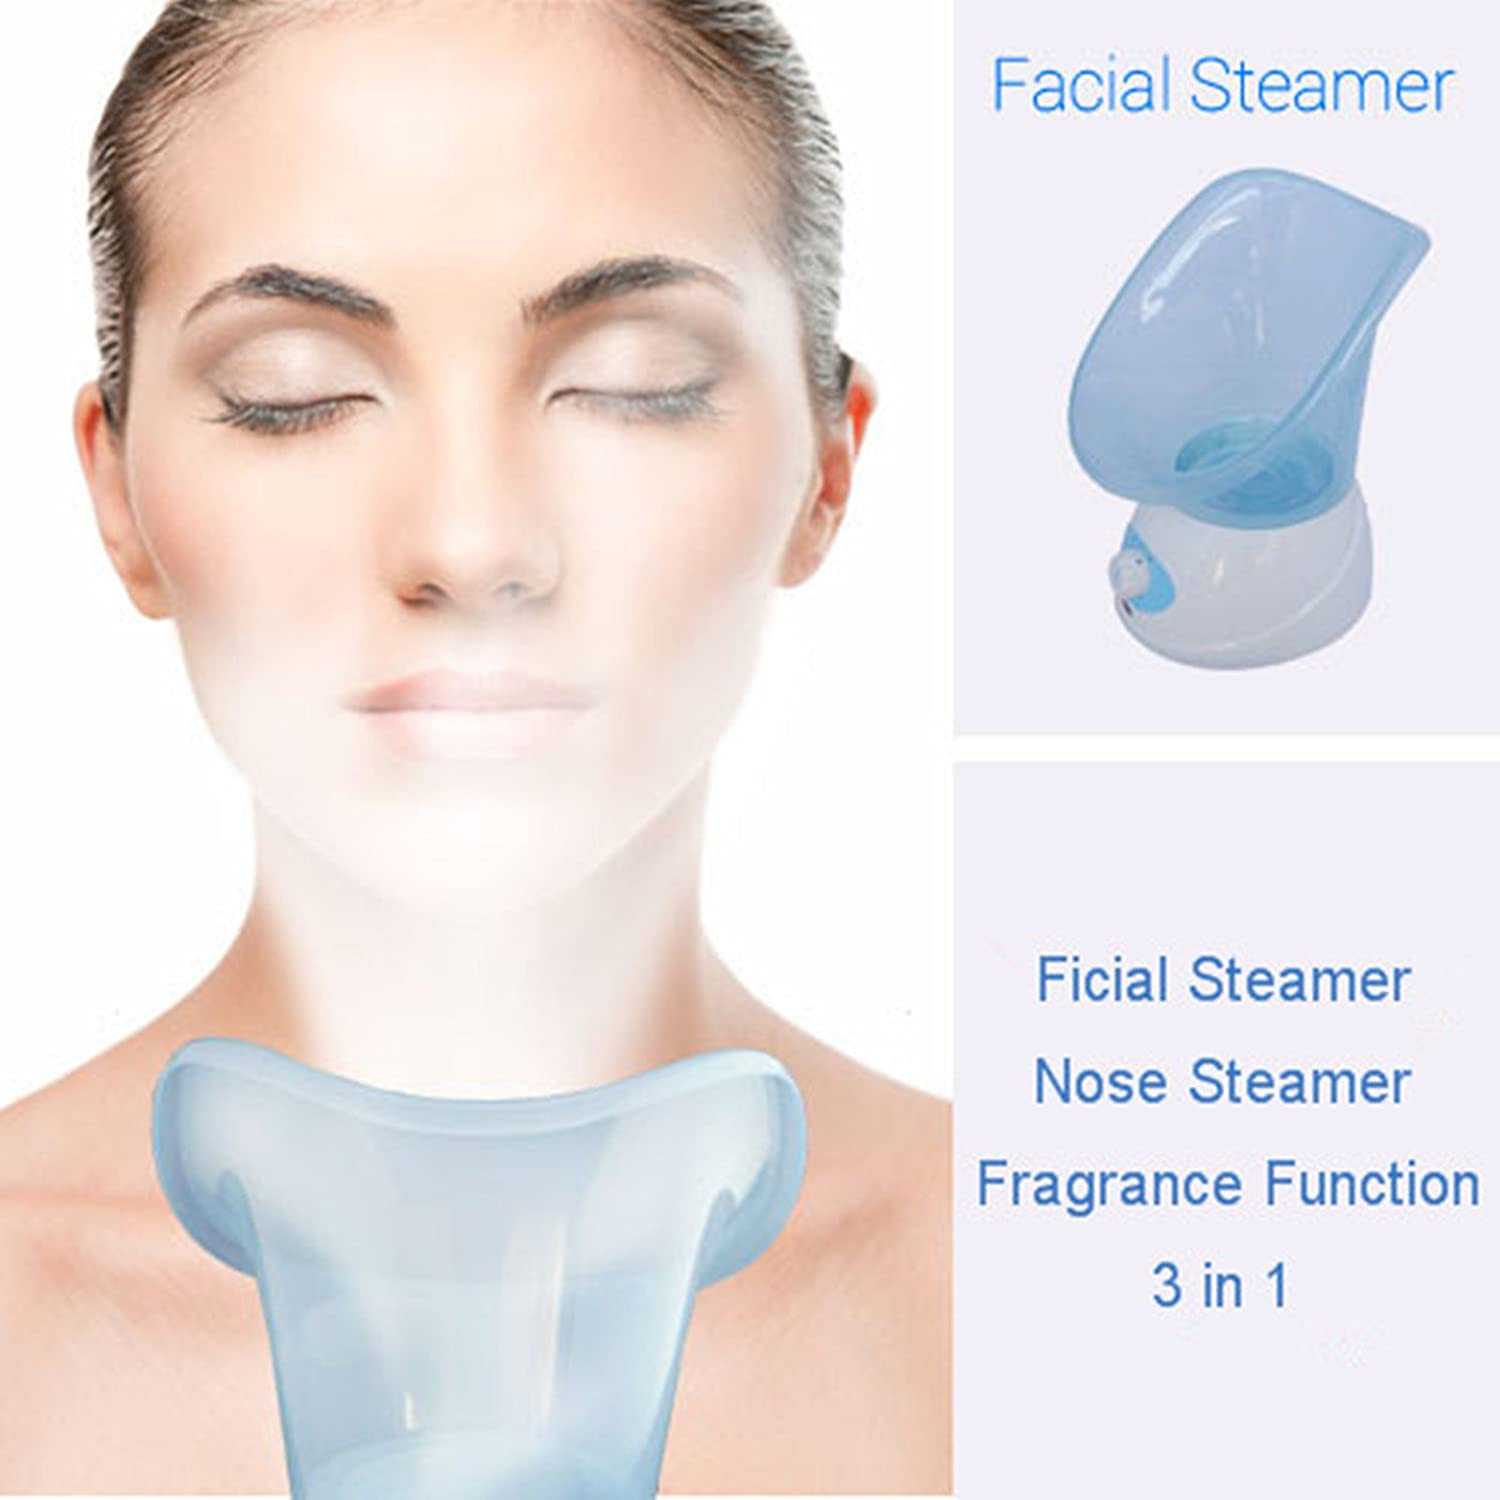 Healtheveryday® 3 in 1 New Facial Steamer & Nose Steamer & Aromatherapy Machine Spa Pores Cleaner Face Skin Sauna Steam Sprayer Facial Mist Thermal Steamer (Blue)